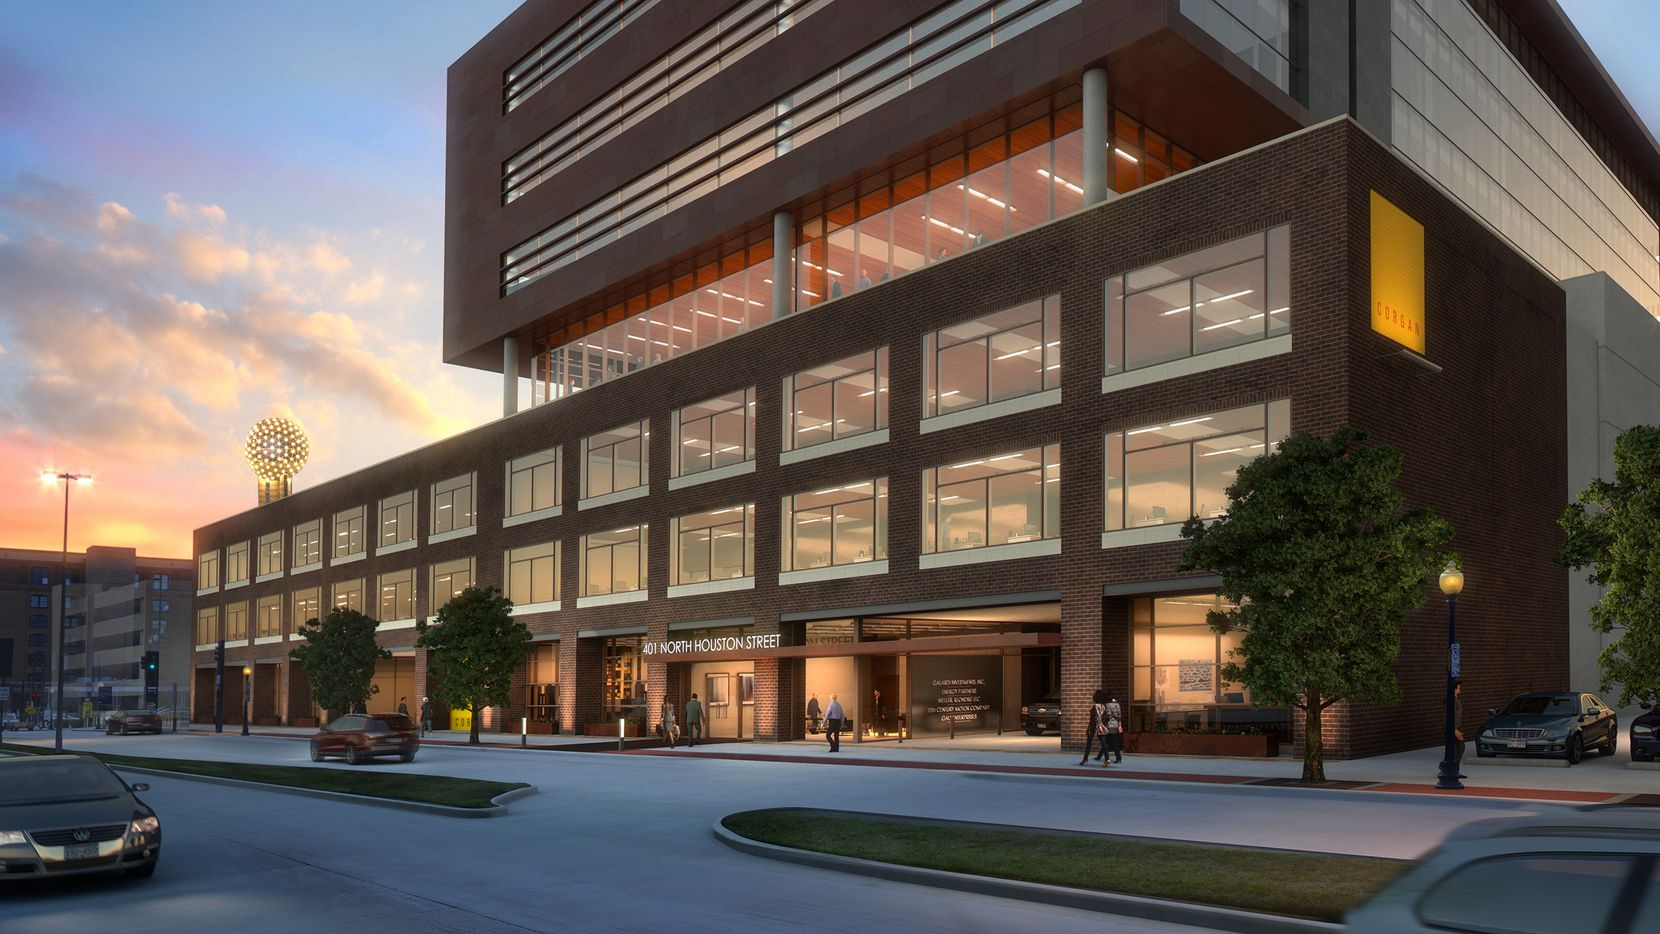 The new Luminary office building on Houston Street hopes to lure more tech and creative workers to the West End when it opens early next year.